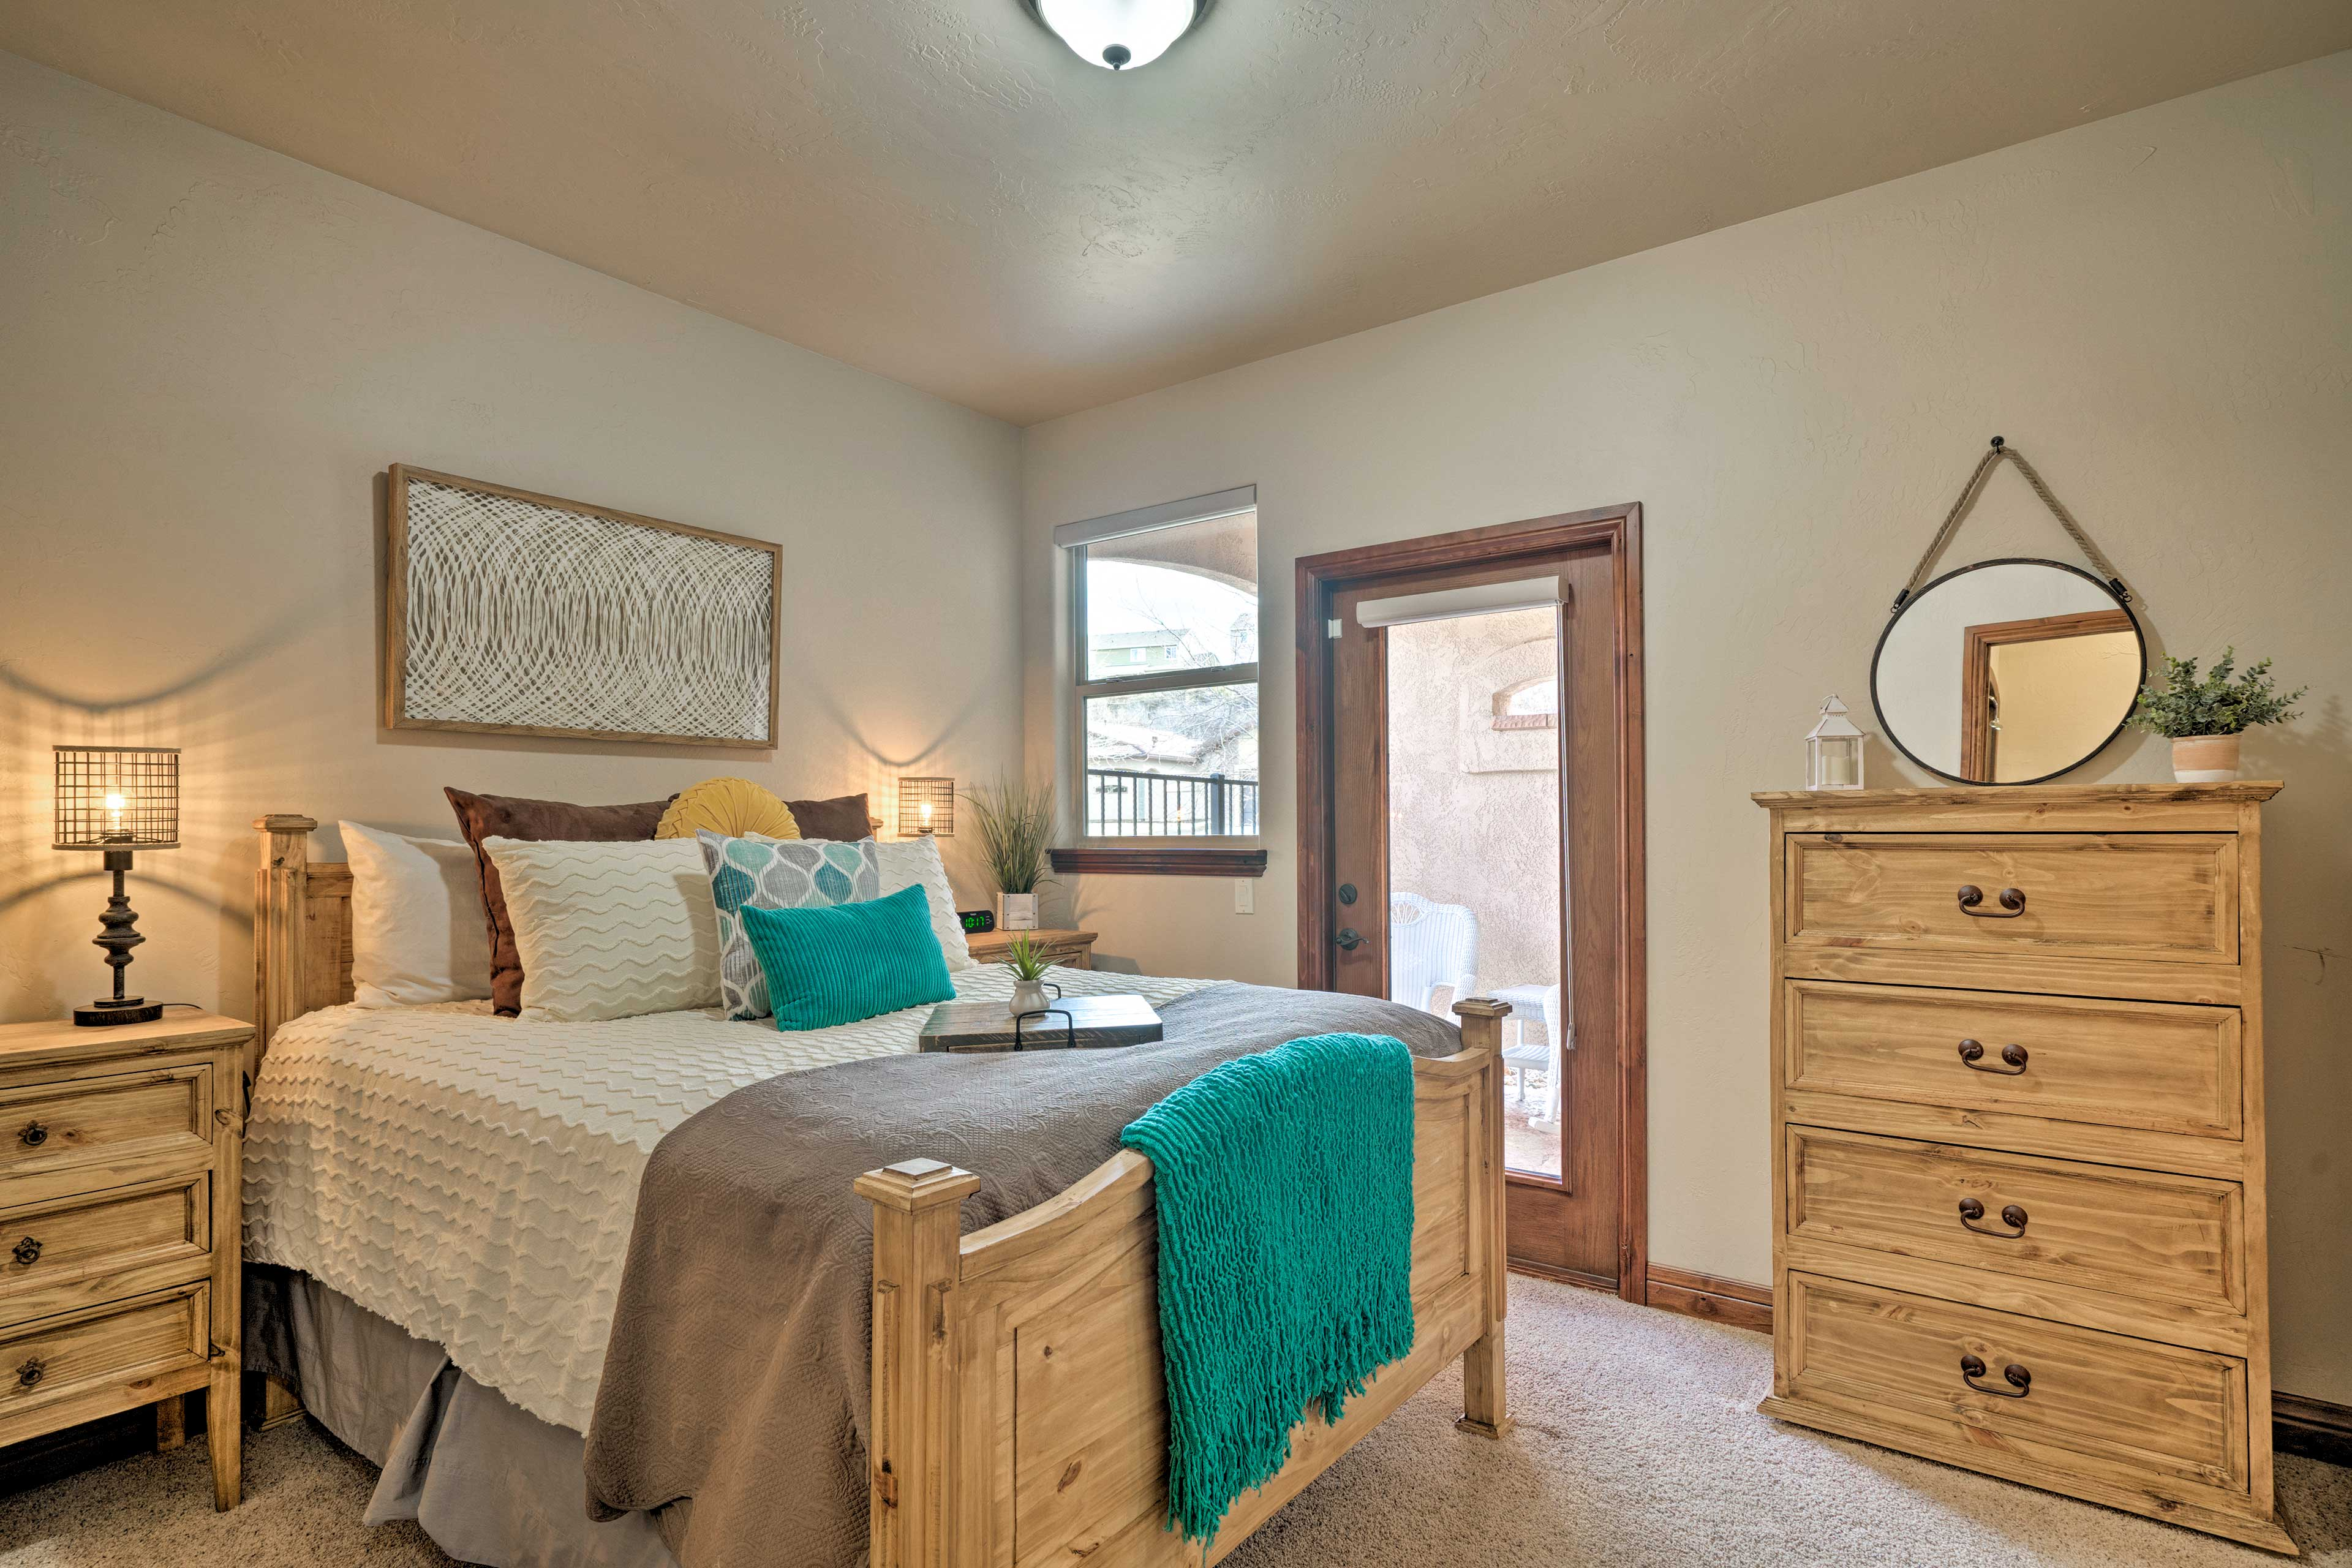 The 2nd master bedroom includes a queen bed and private patio entrance.